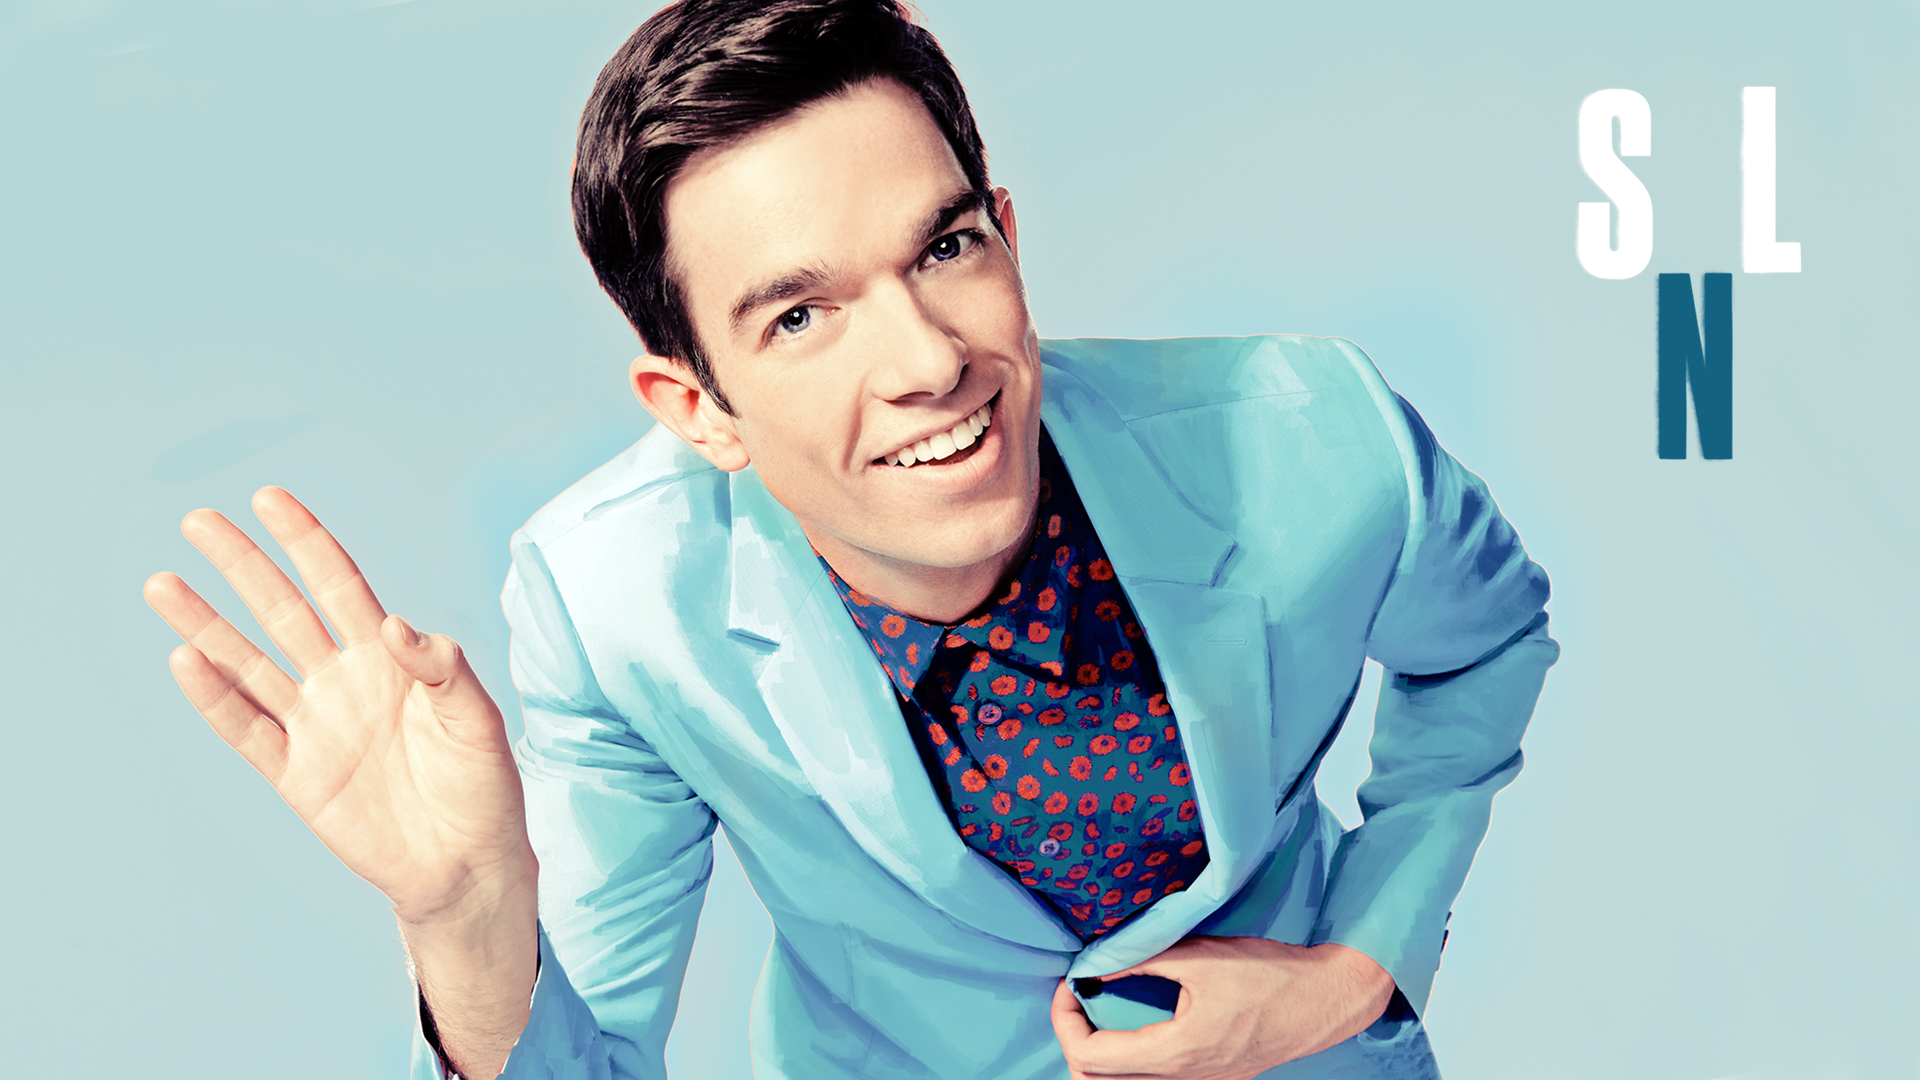 JohnMulaney05_137_lyrd_copy_2_REDO_REDO.png